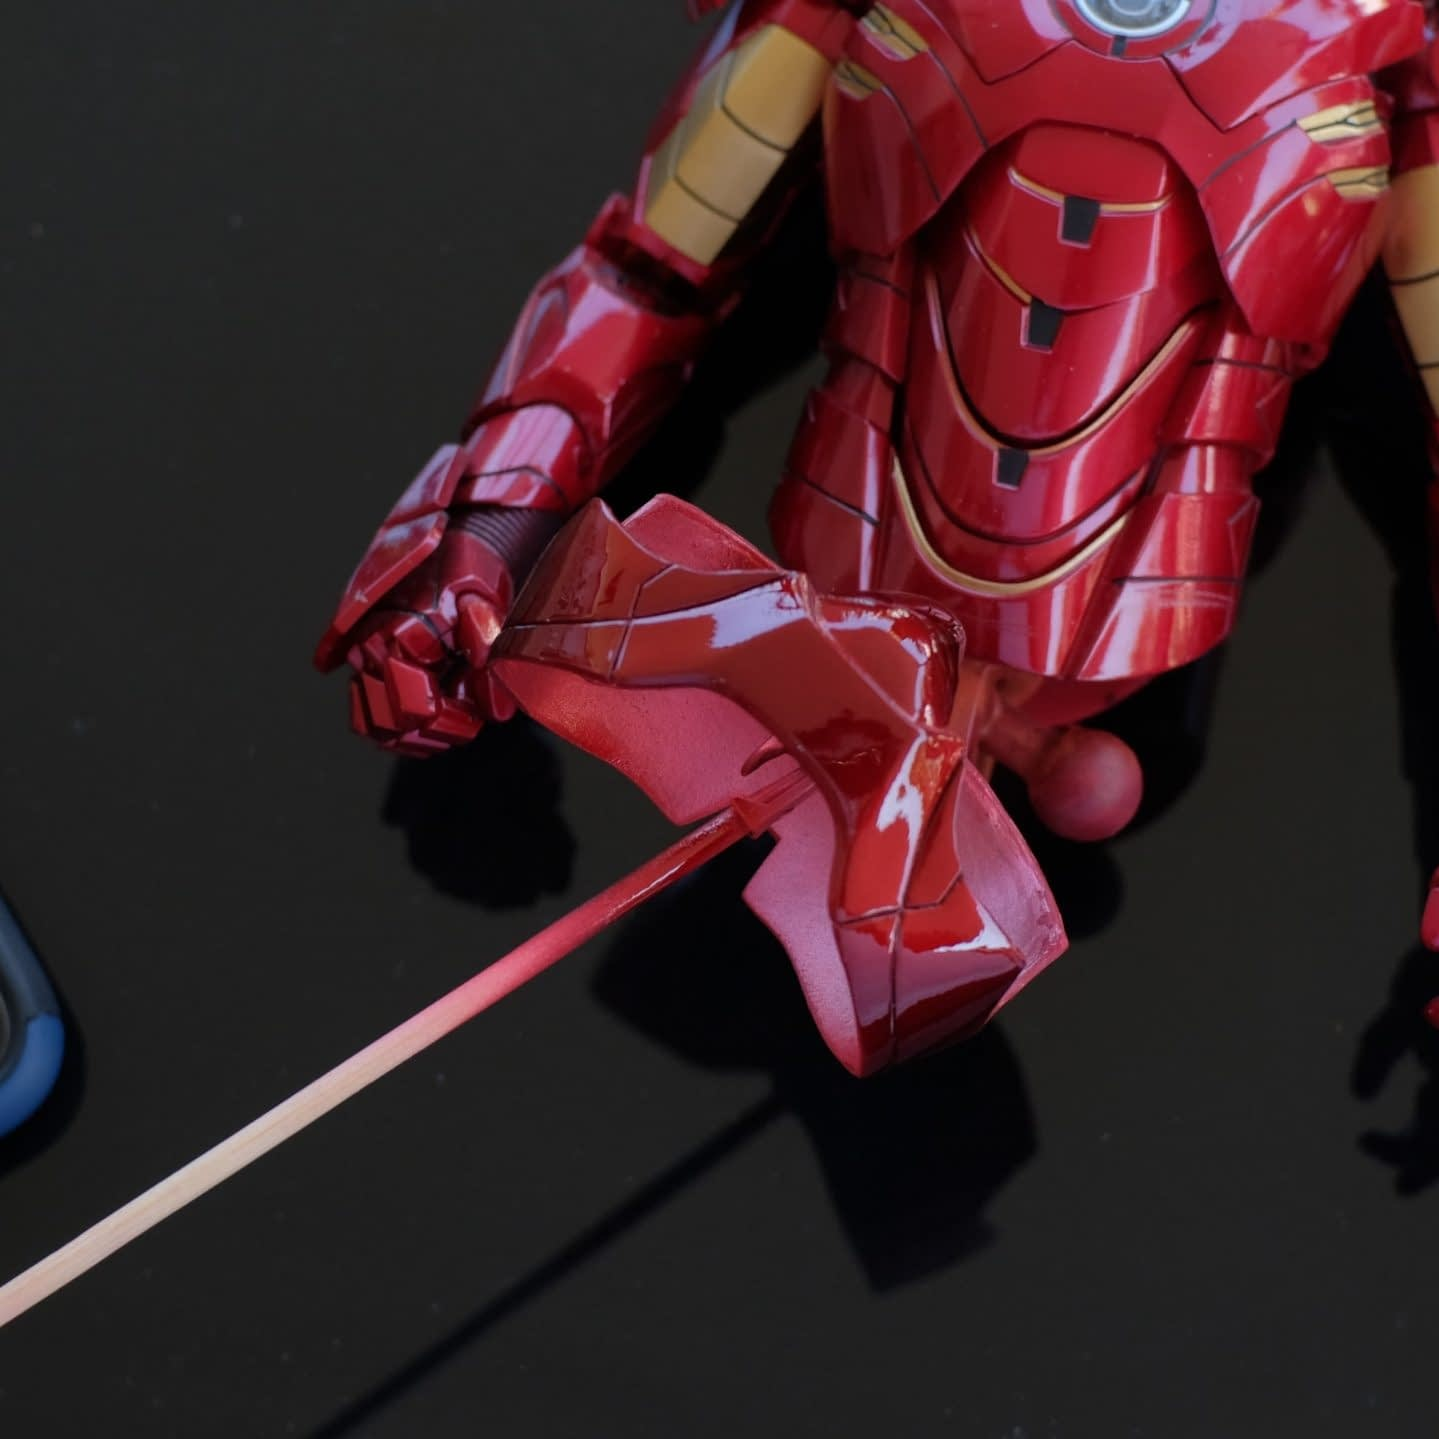 How to fix HT's Iron Man pink panty issue 26